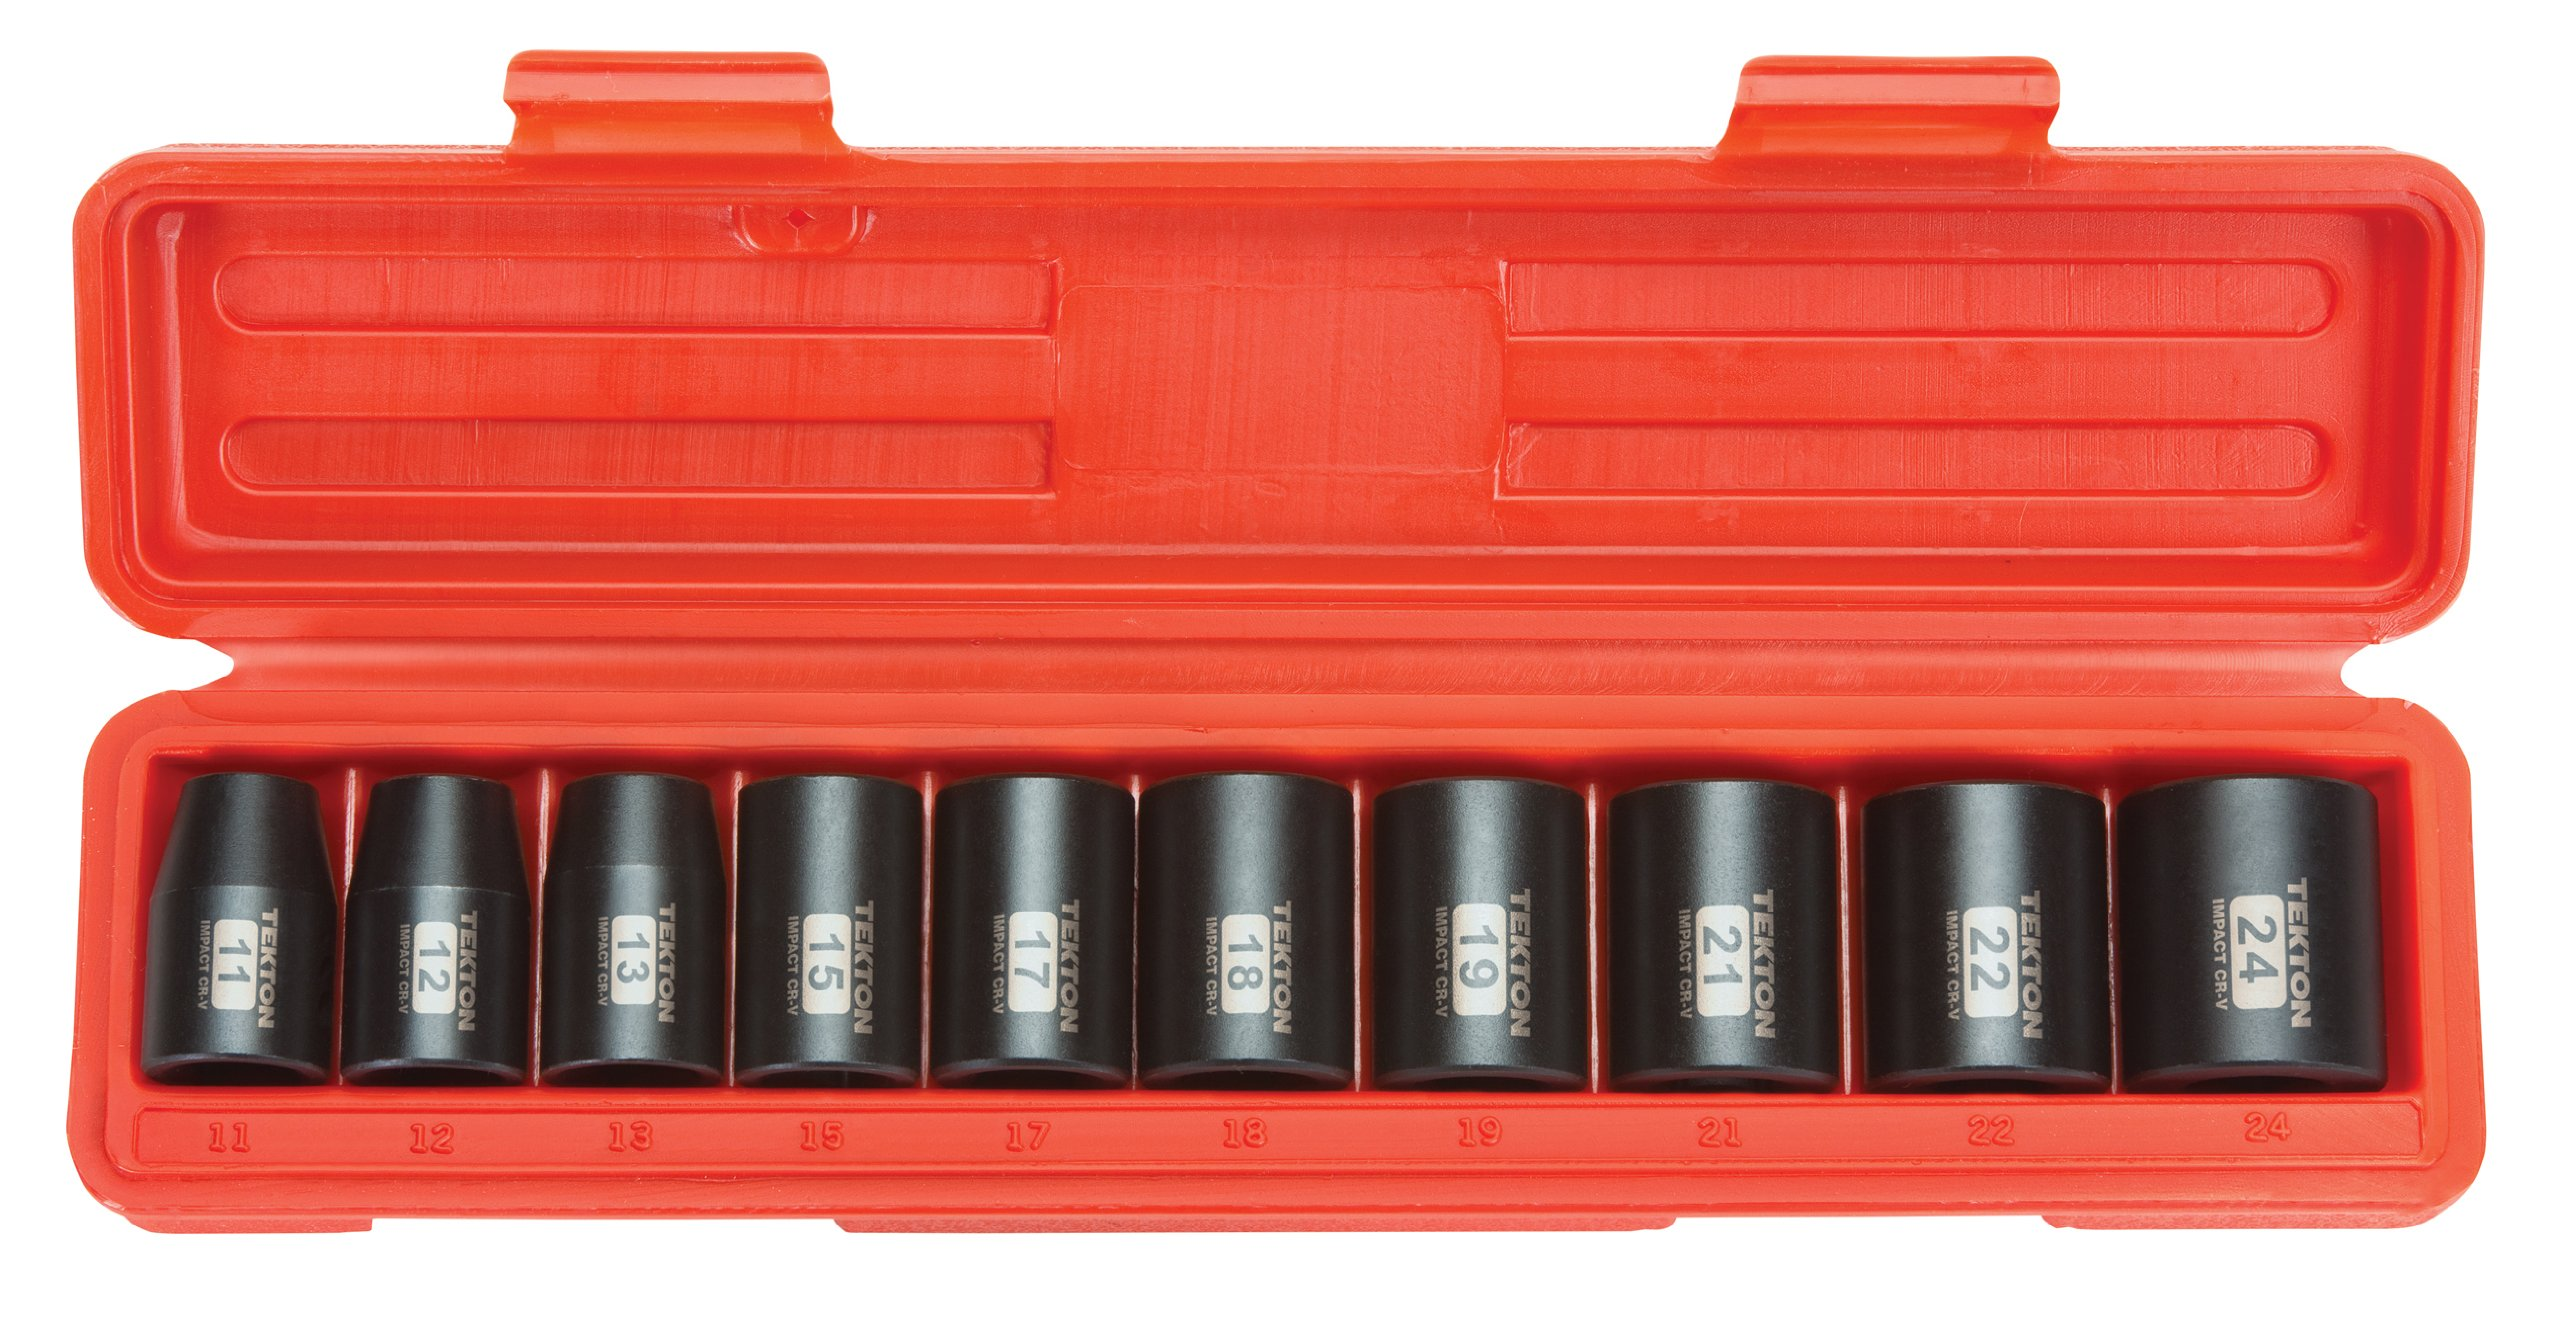 TEKTON 1/2-Inch Drive Shallow Impact Socket Set, Metric, Cr-V, 6-Point, 11 mm - 24 mm, 10-Sockets | 4815 by TEKTON